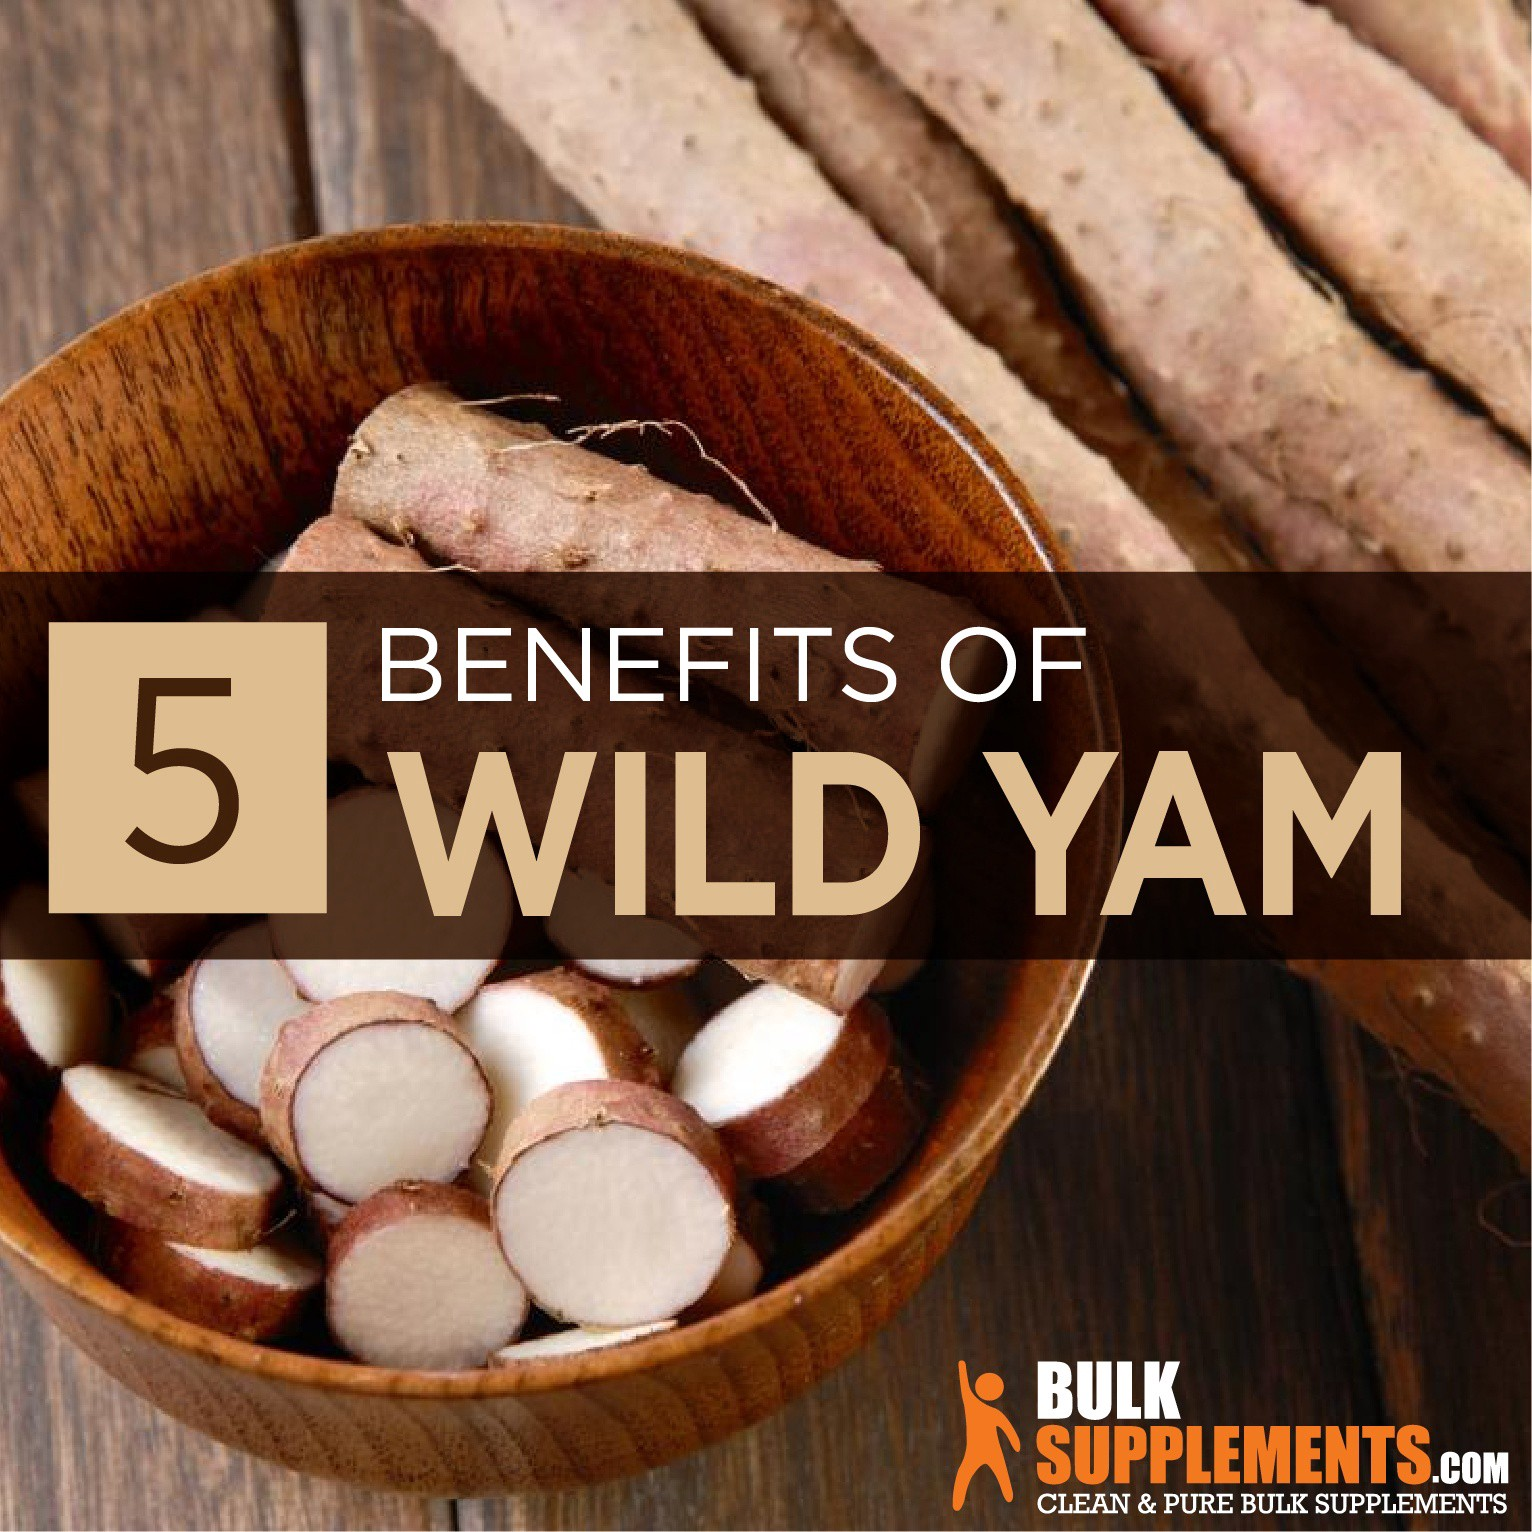 Wild Yam Extract: Benefits, Side Effects & Dosage